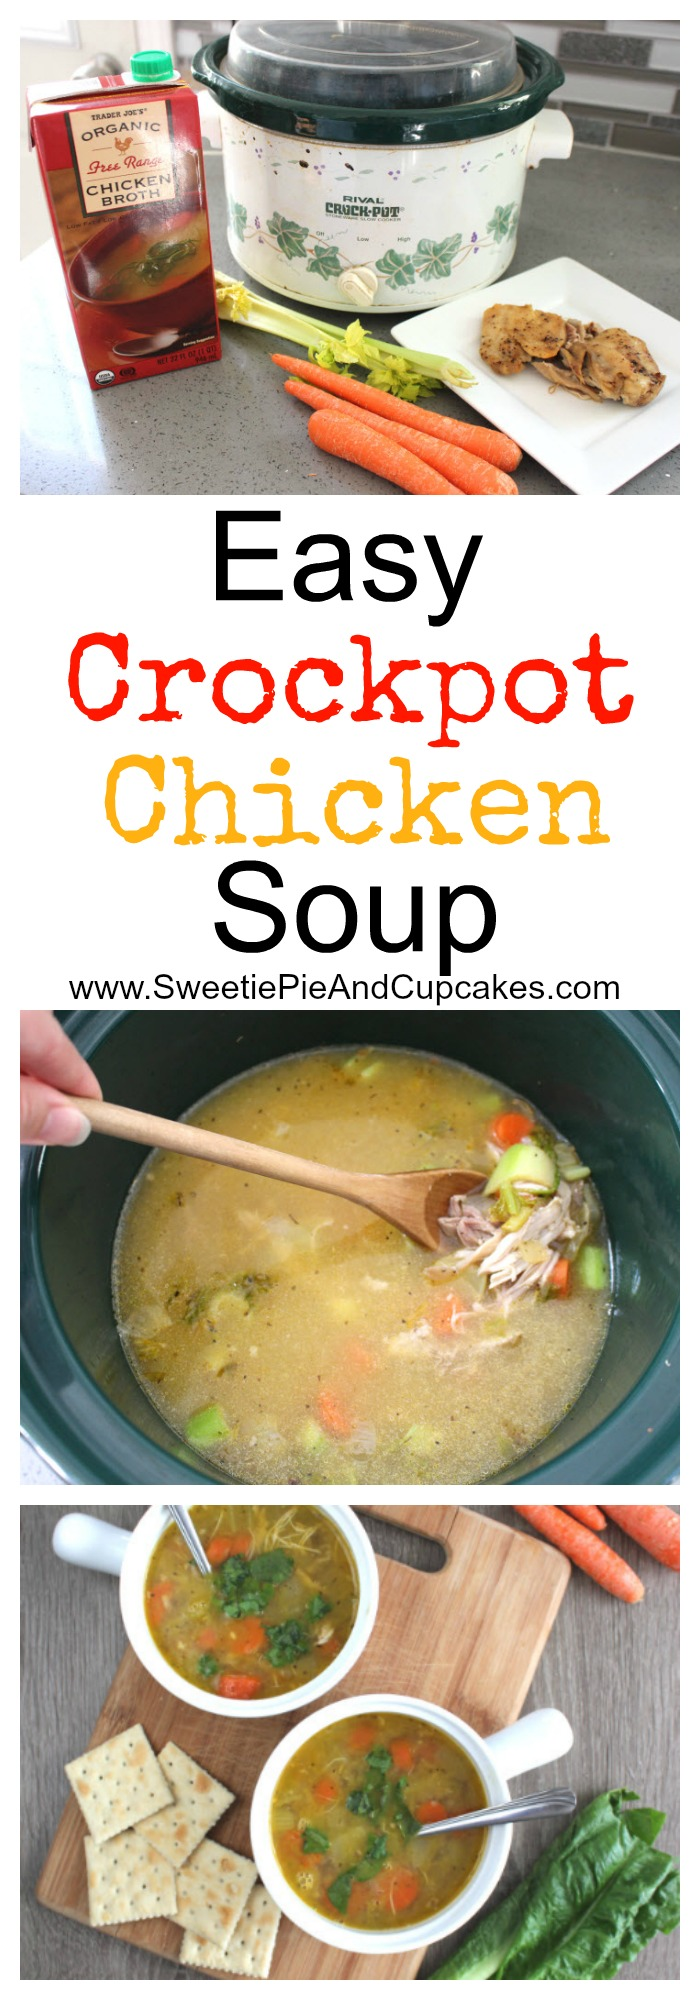 Delicious, Healthy and Easy Crockpot Chicken Soup